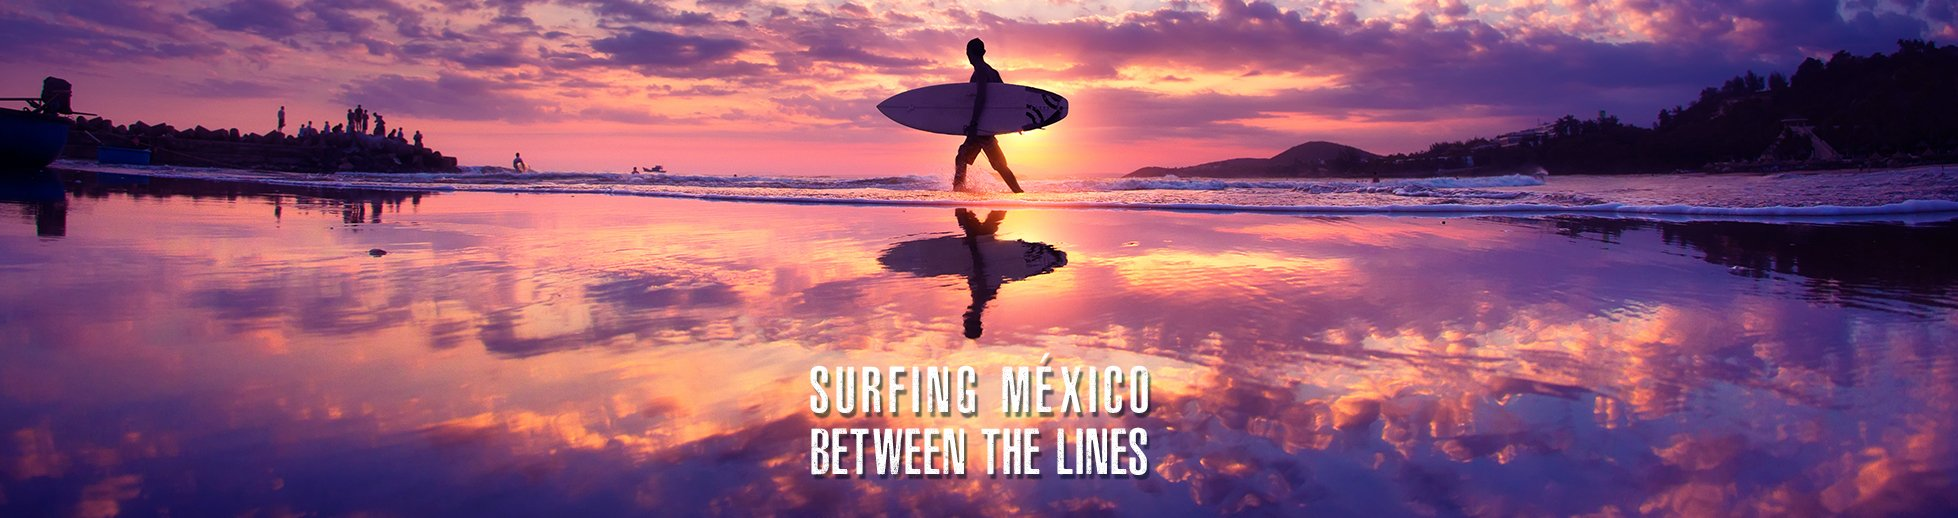 surfing Mexico between the lines